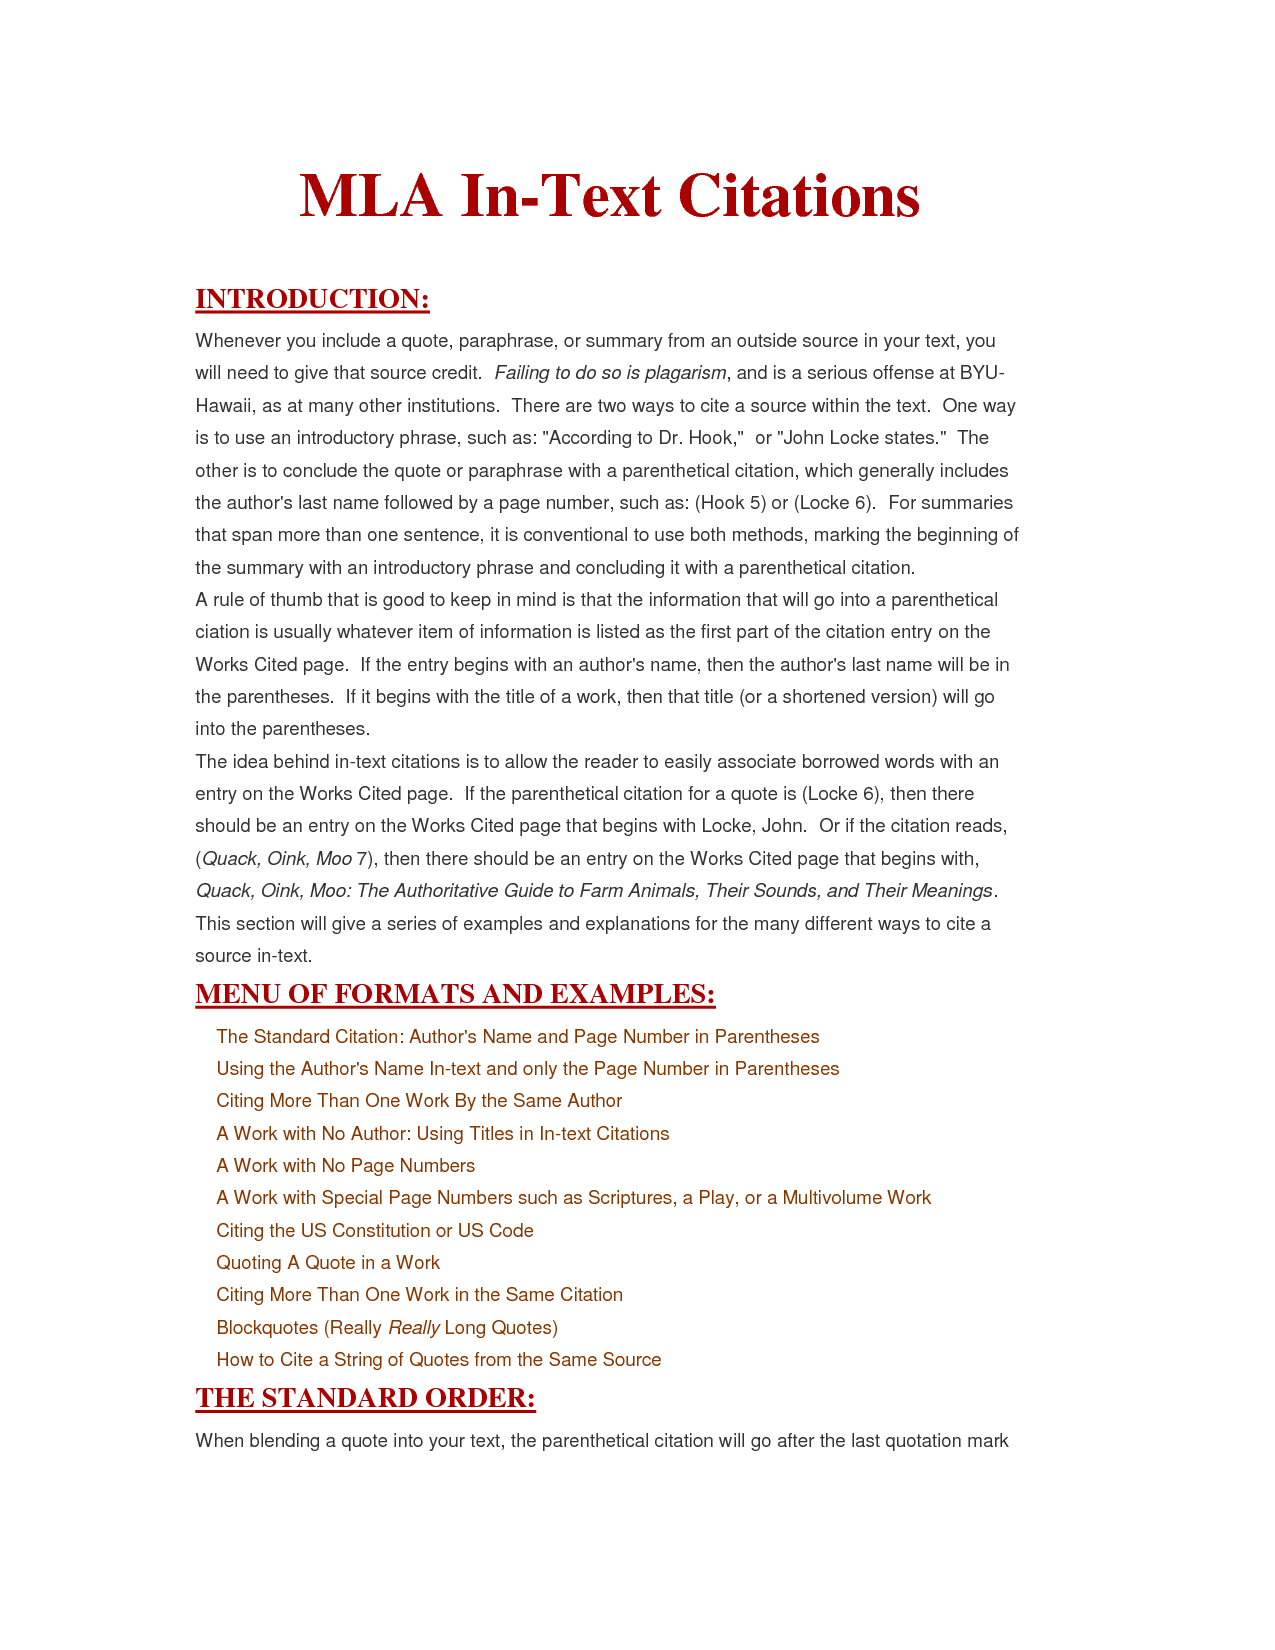 Mla Citation Powerpoint Follow Usllow Excellent Classroom Poster On How To  Citermation From Internet